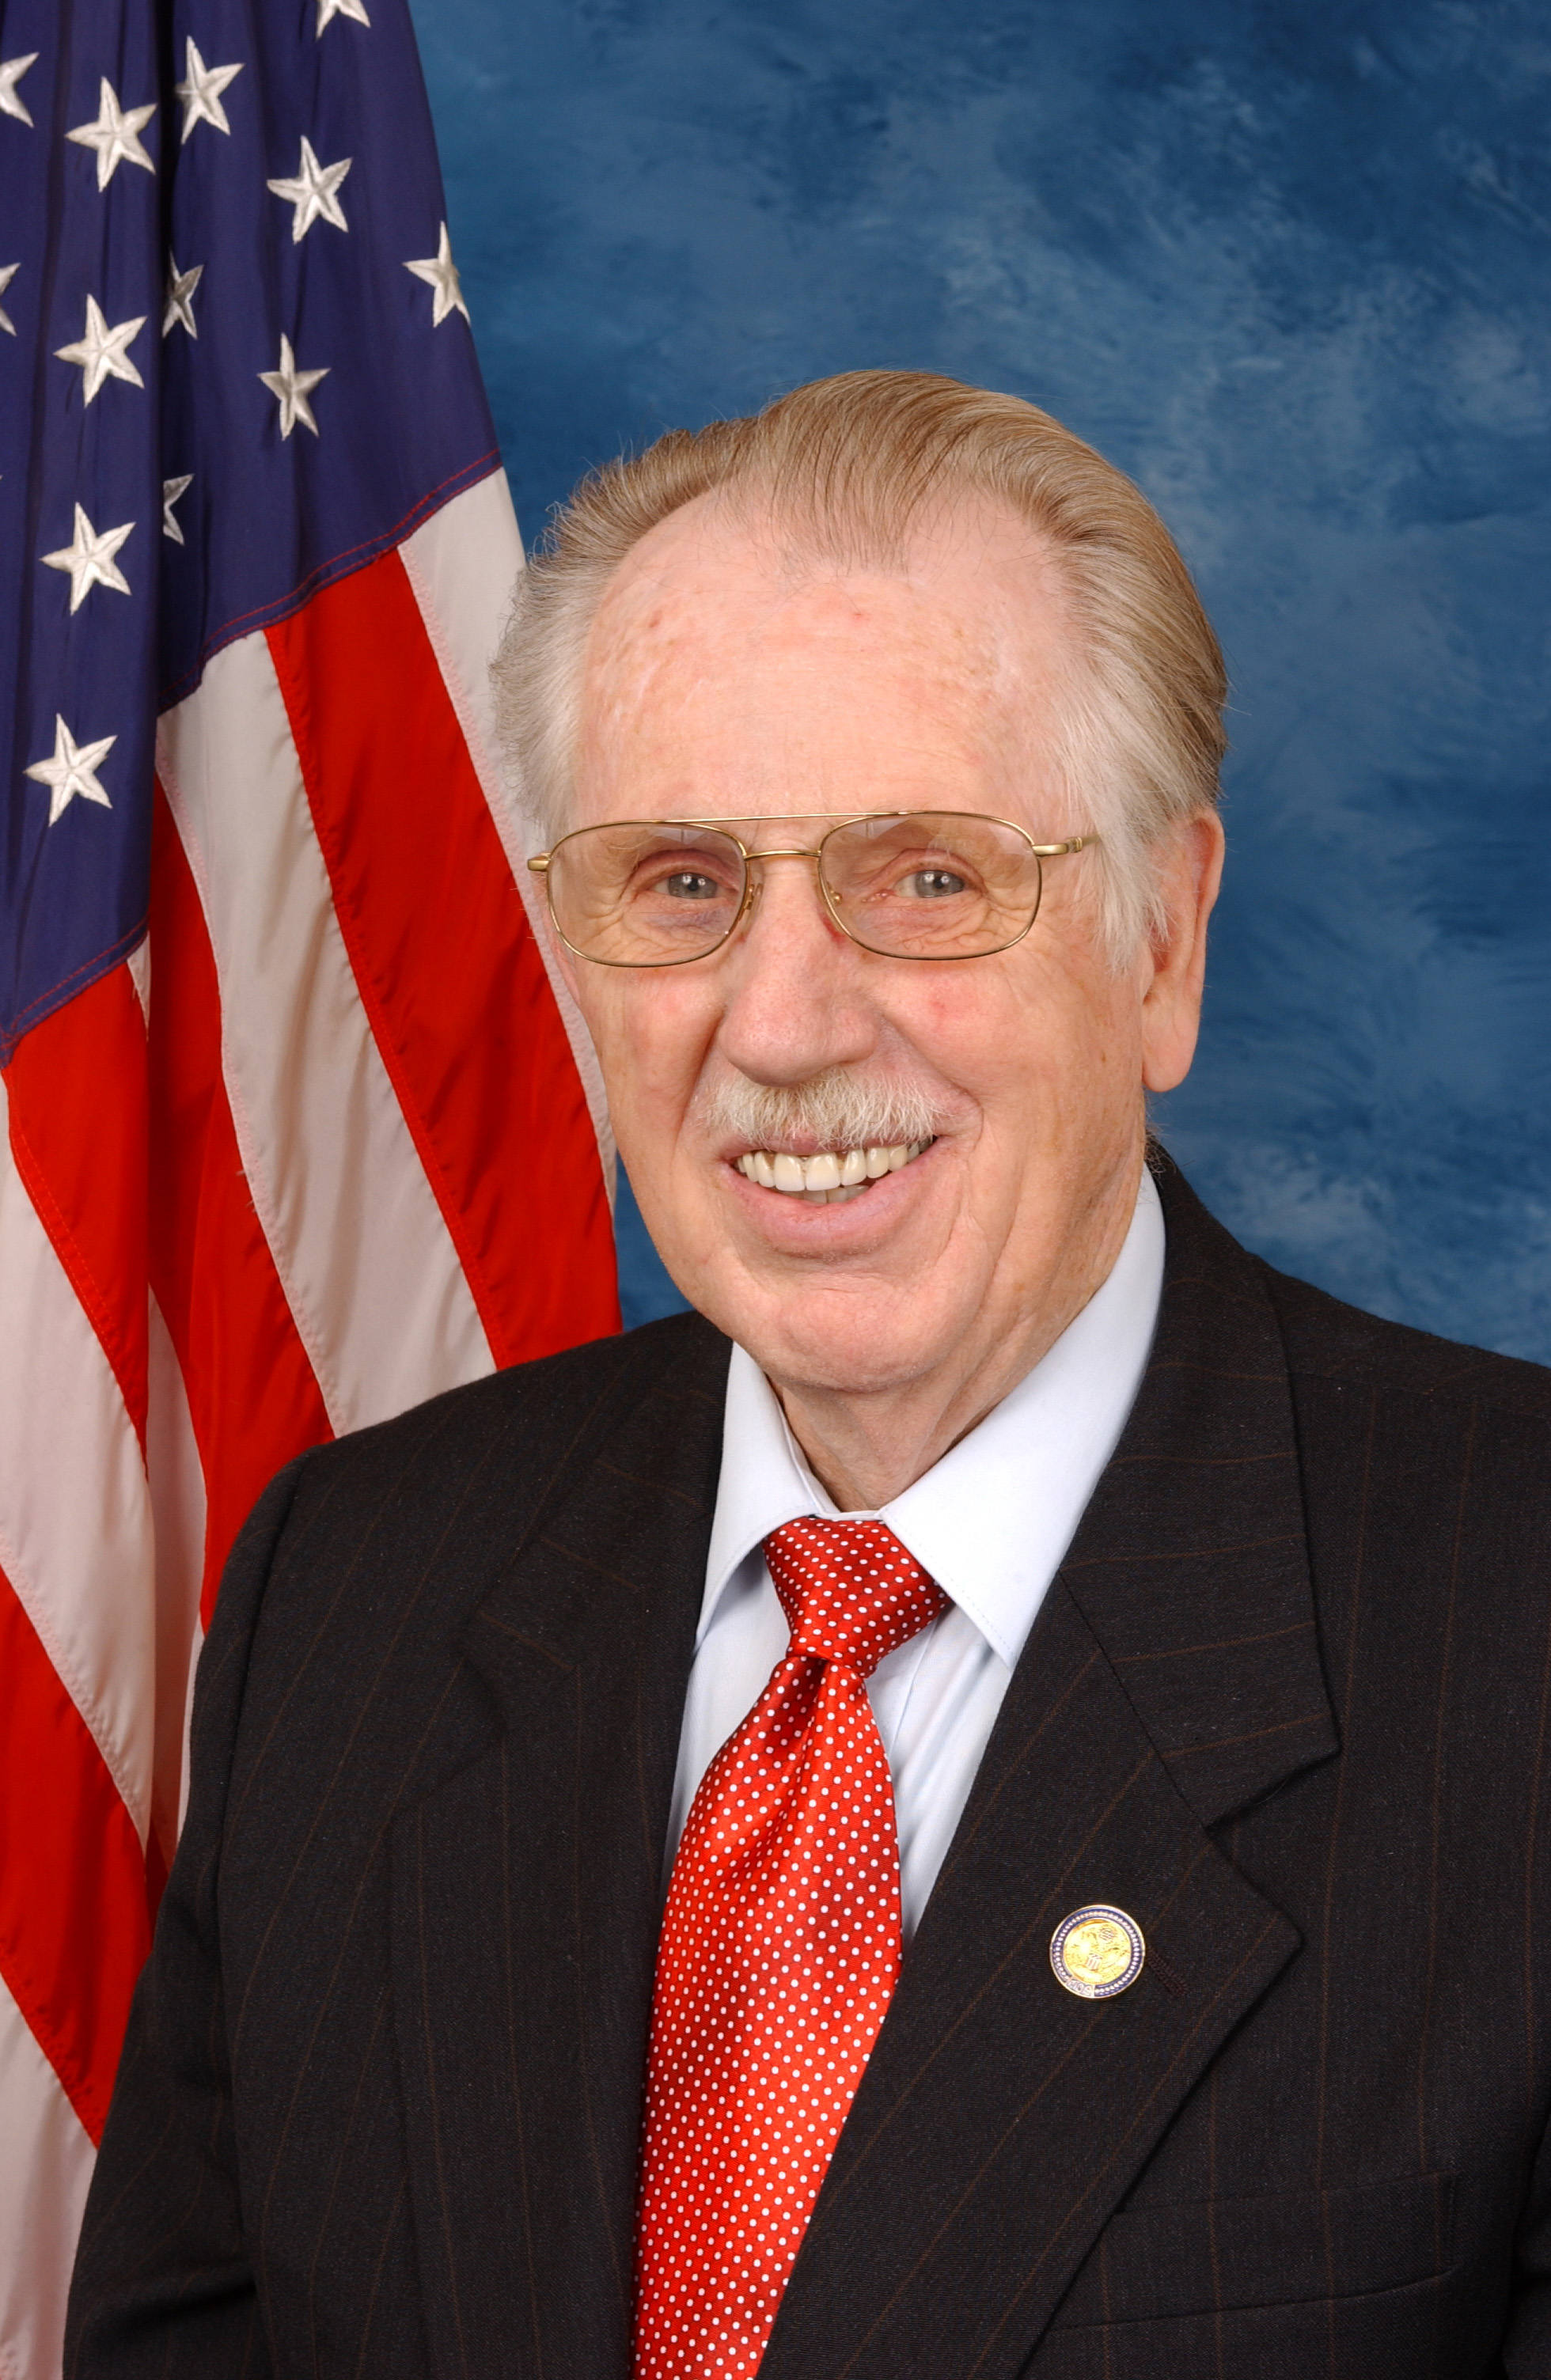 http://upload.wikimedia.org/wikipedia/commons/c/c7/Roscoe_Bartlett,_official_color_photo,_2005.jpg